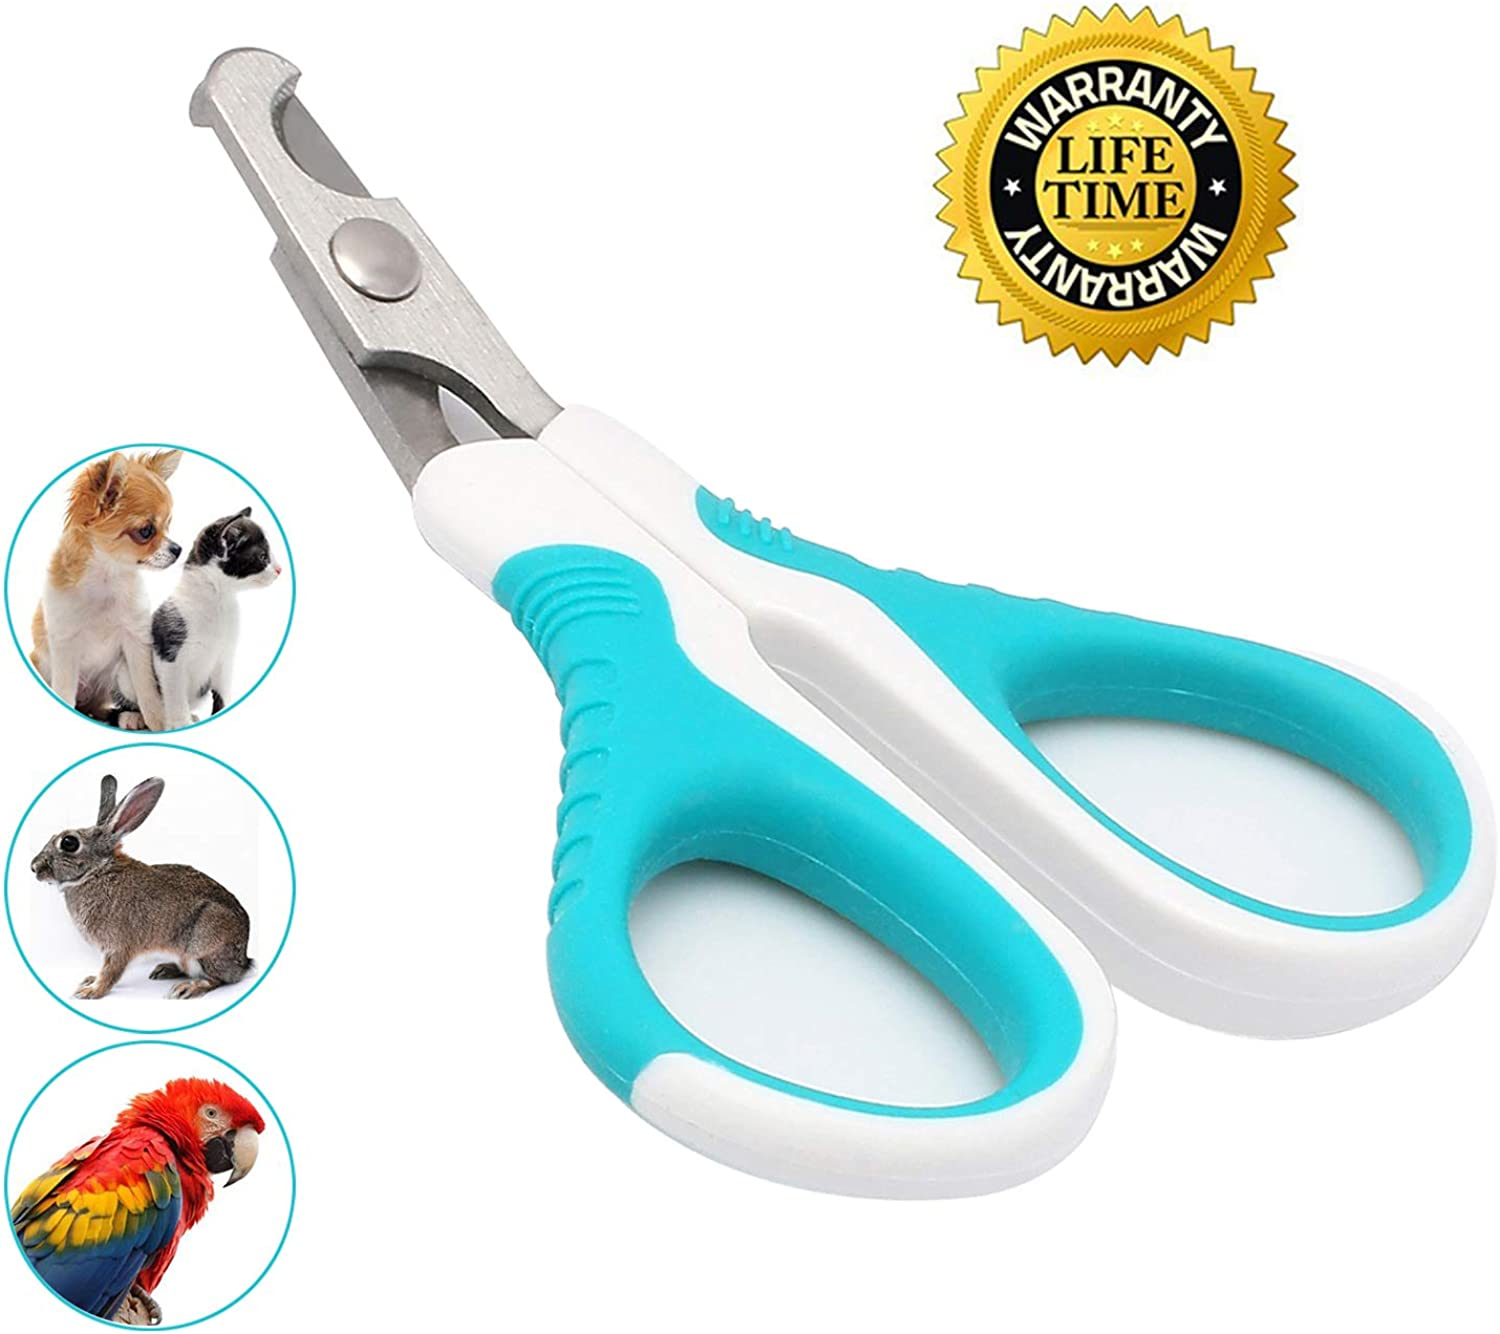 Cat Nail Clippers for Small Animals,Cat Claw Clippers Scissors & Nail Cutter Professional Grooming Cat Claw Trimmer for Cats